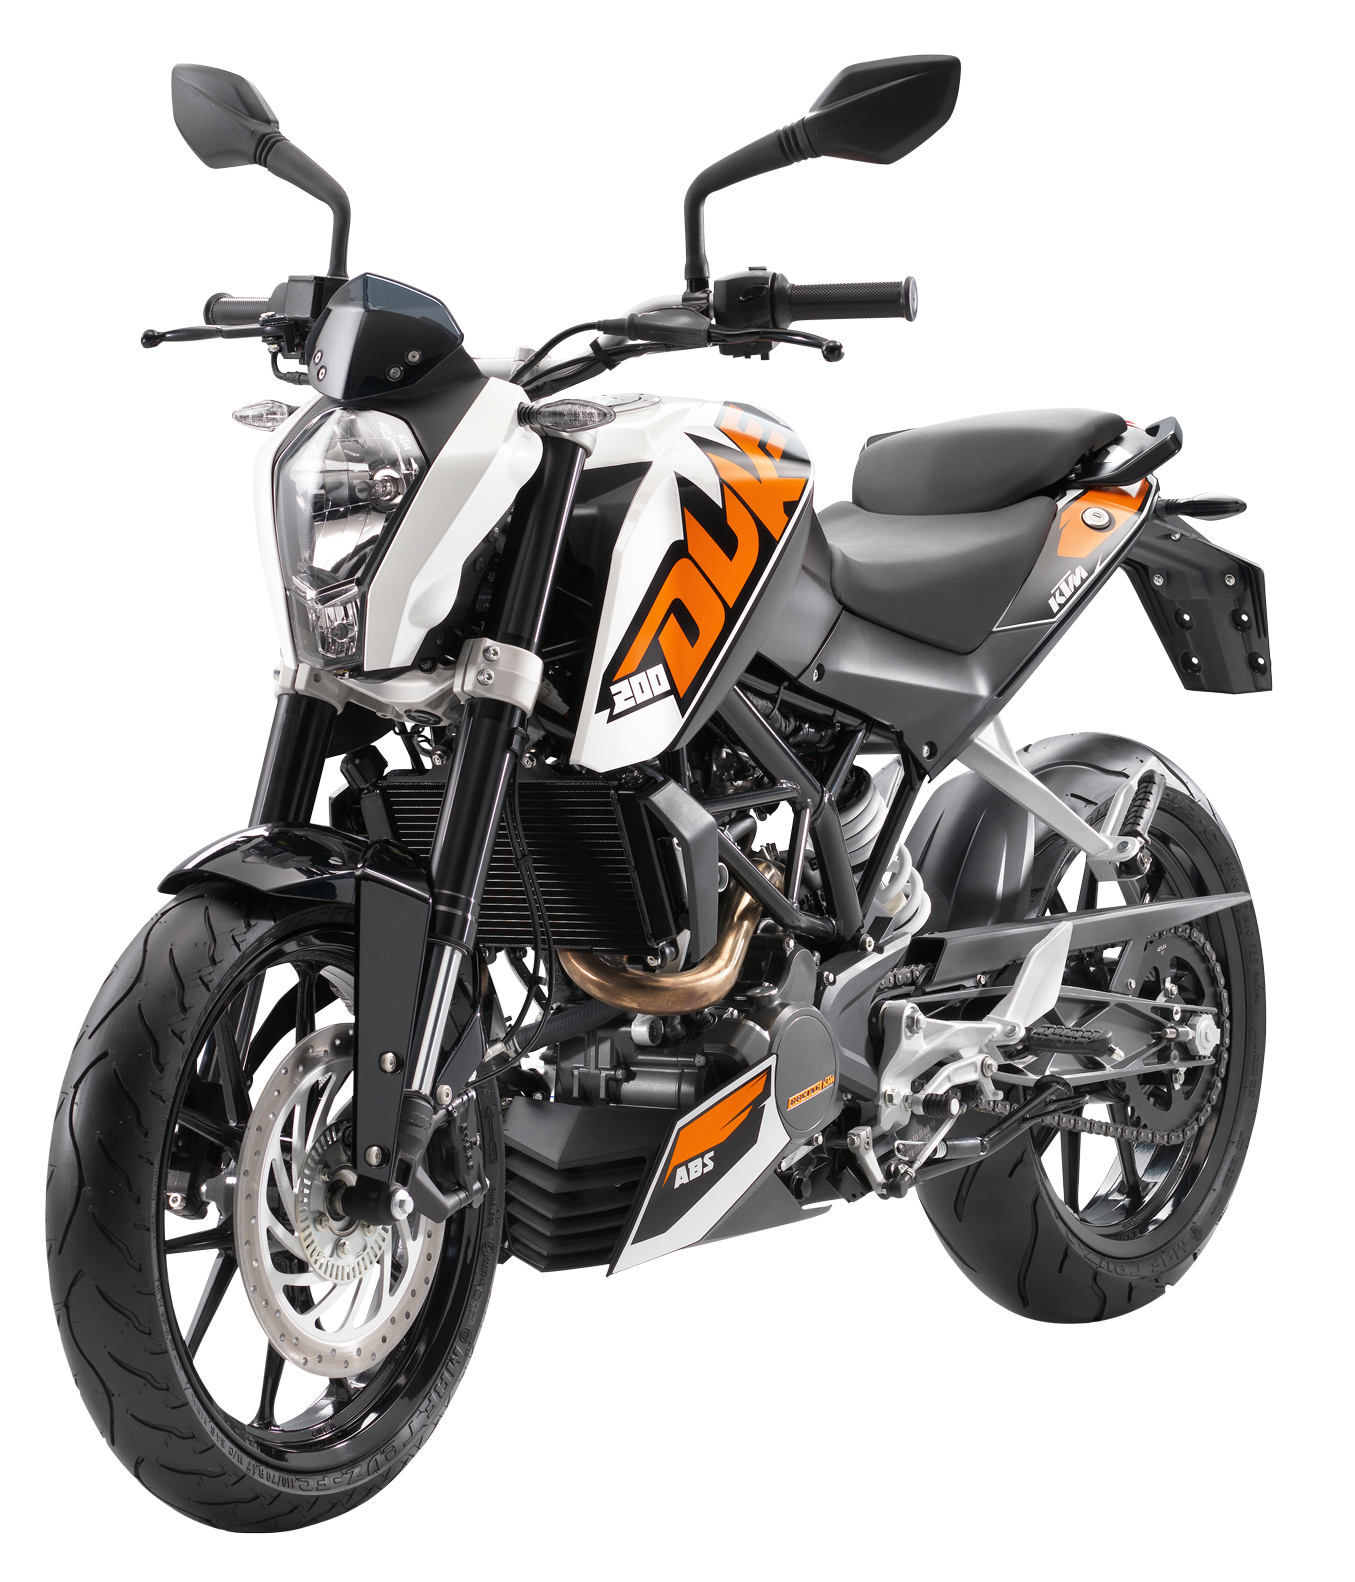 Free download transparentpng . Clipart bike side view